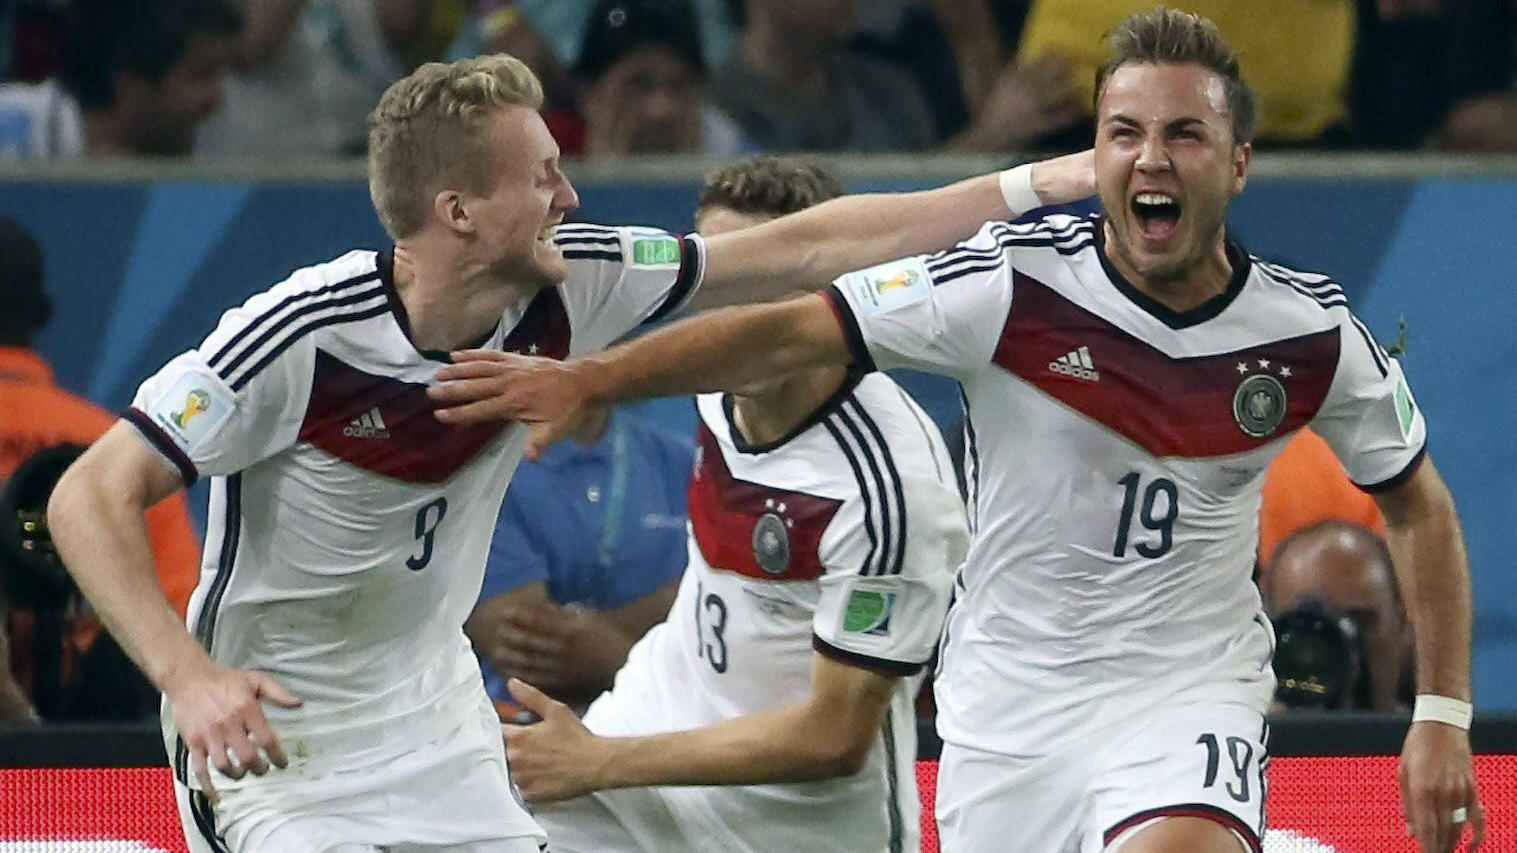 FILE - epa04314829 Mario Goetze (R) of Germany is celebrated by Andre Schuerrle (L) after scoring the winning goal during the FIFA World Cup 2014 final between Germany and Argentina at the Estadio do Maracana in Rio de Janeiro, Brazil, 13 July 2014.